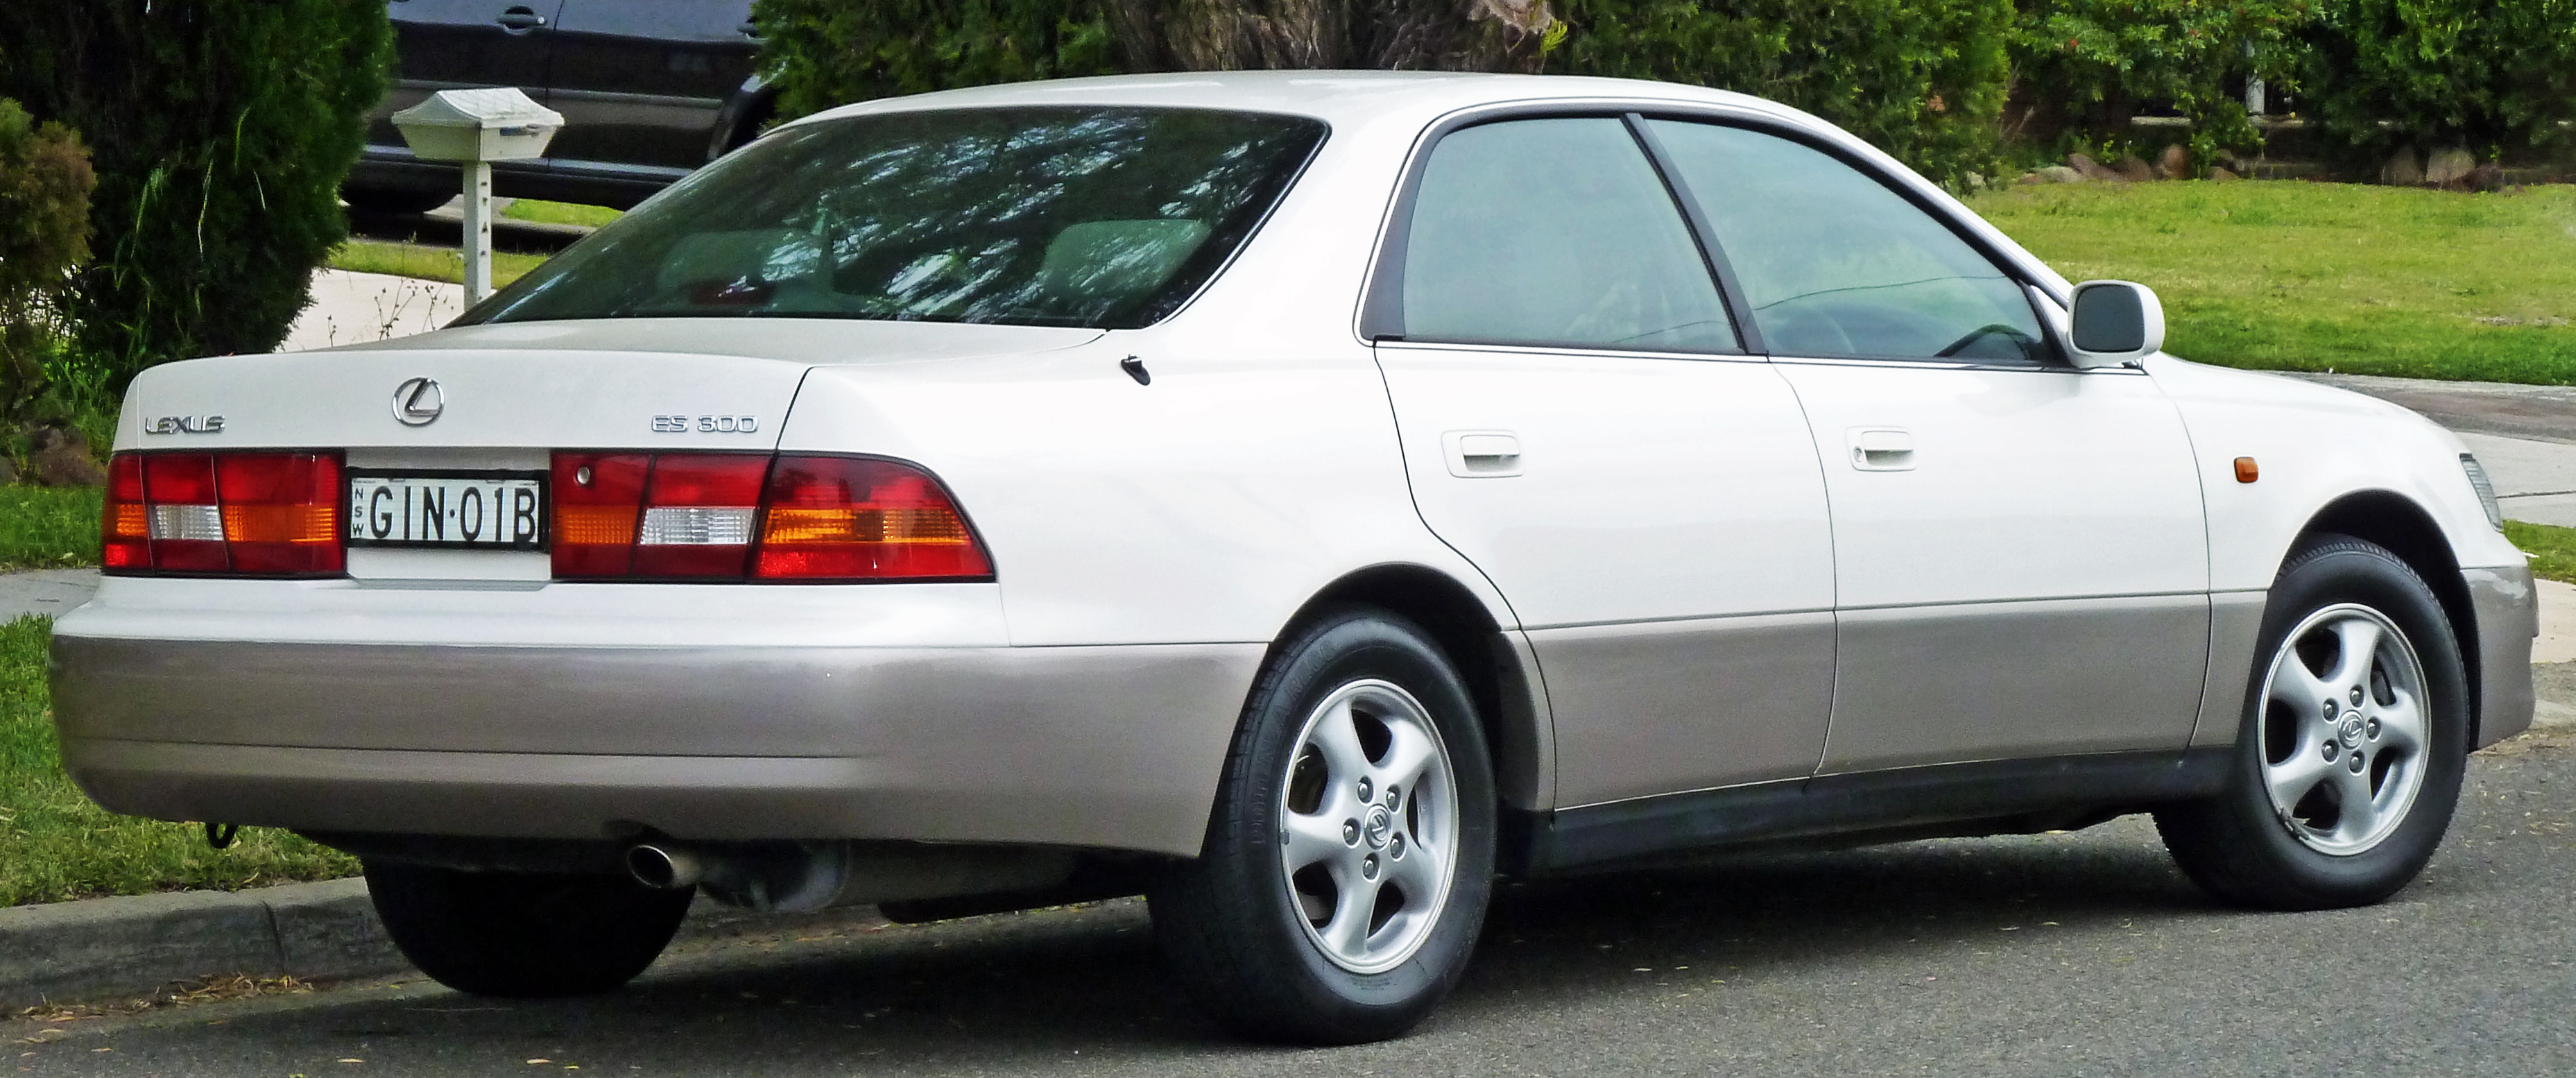 1999 Lexus IS #3